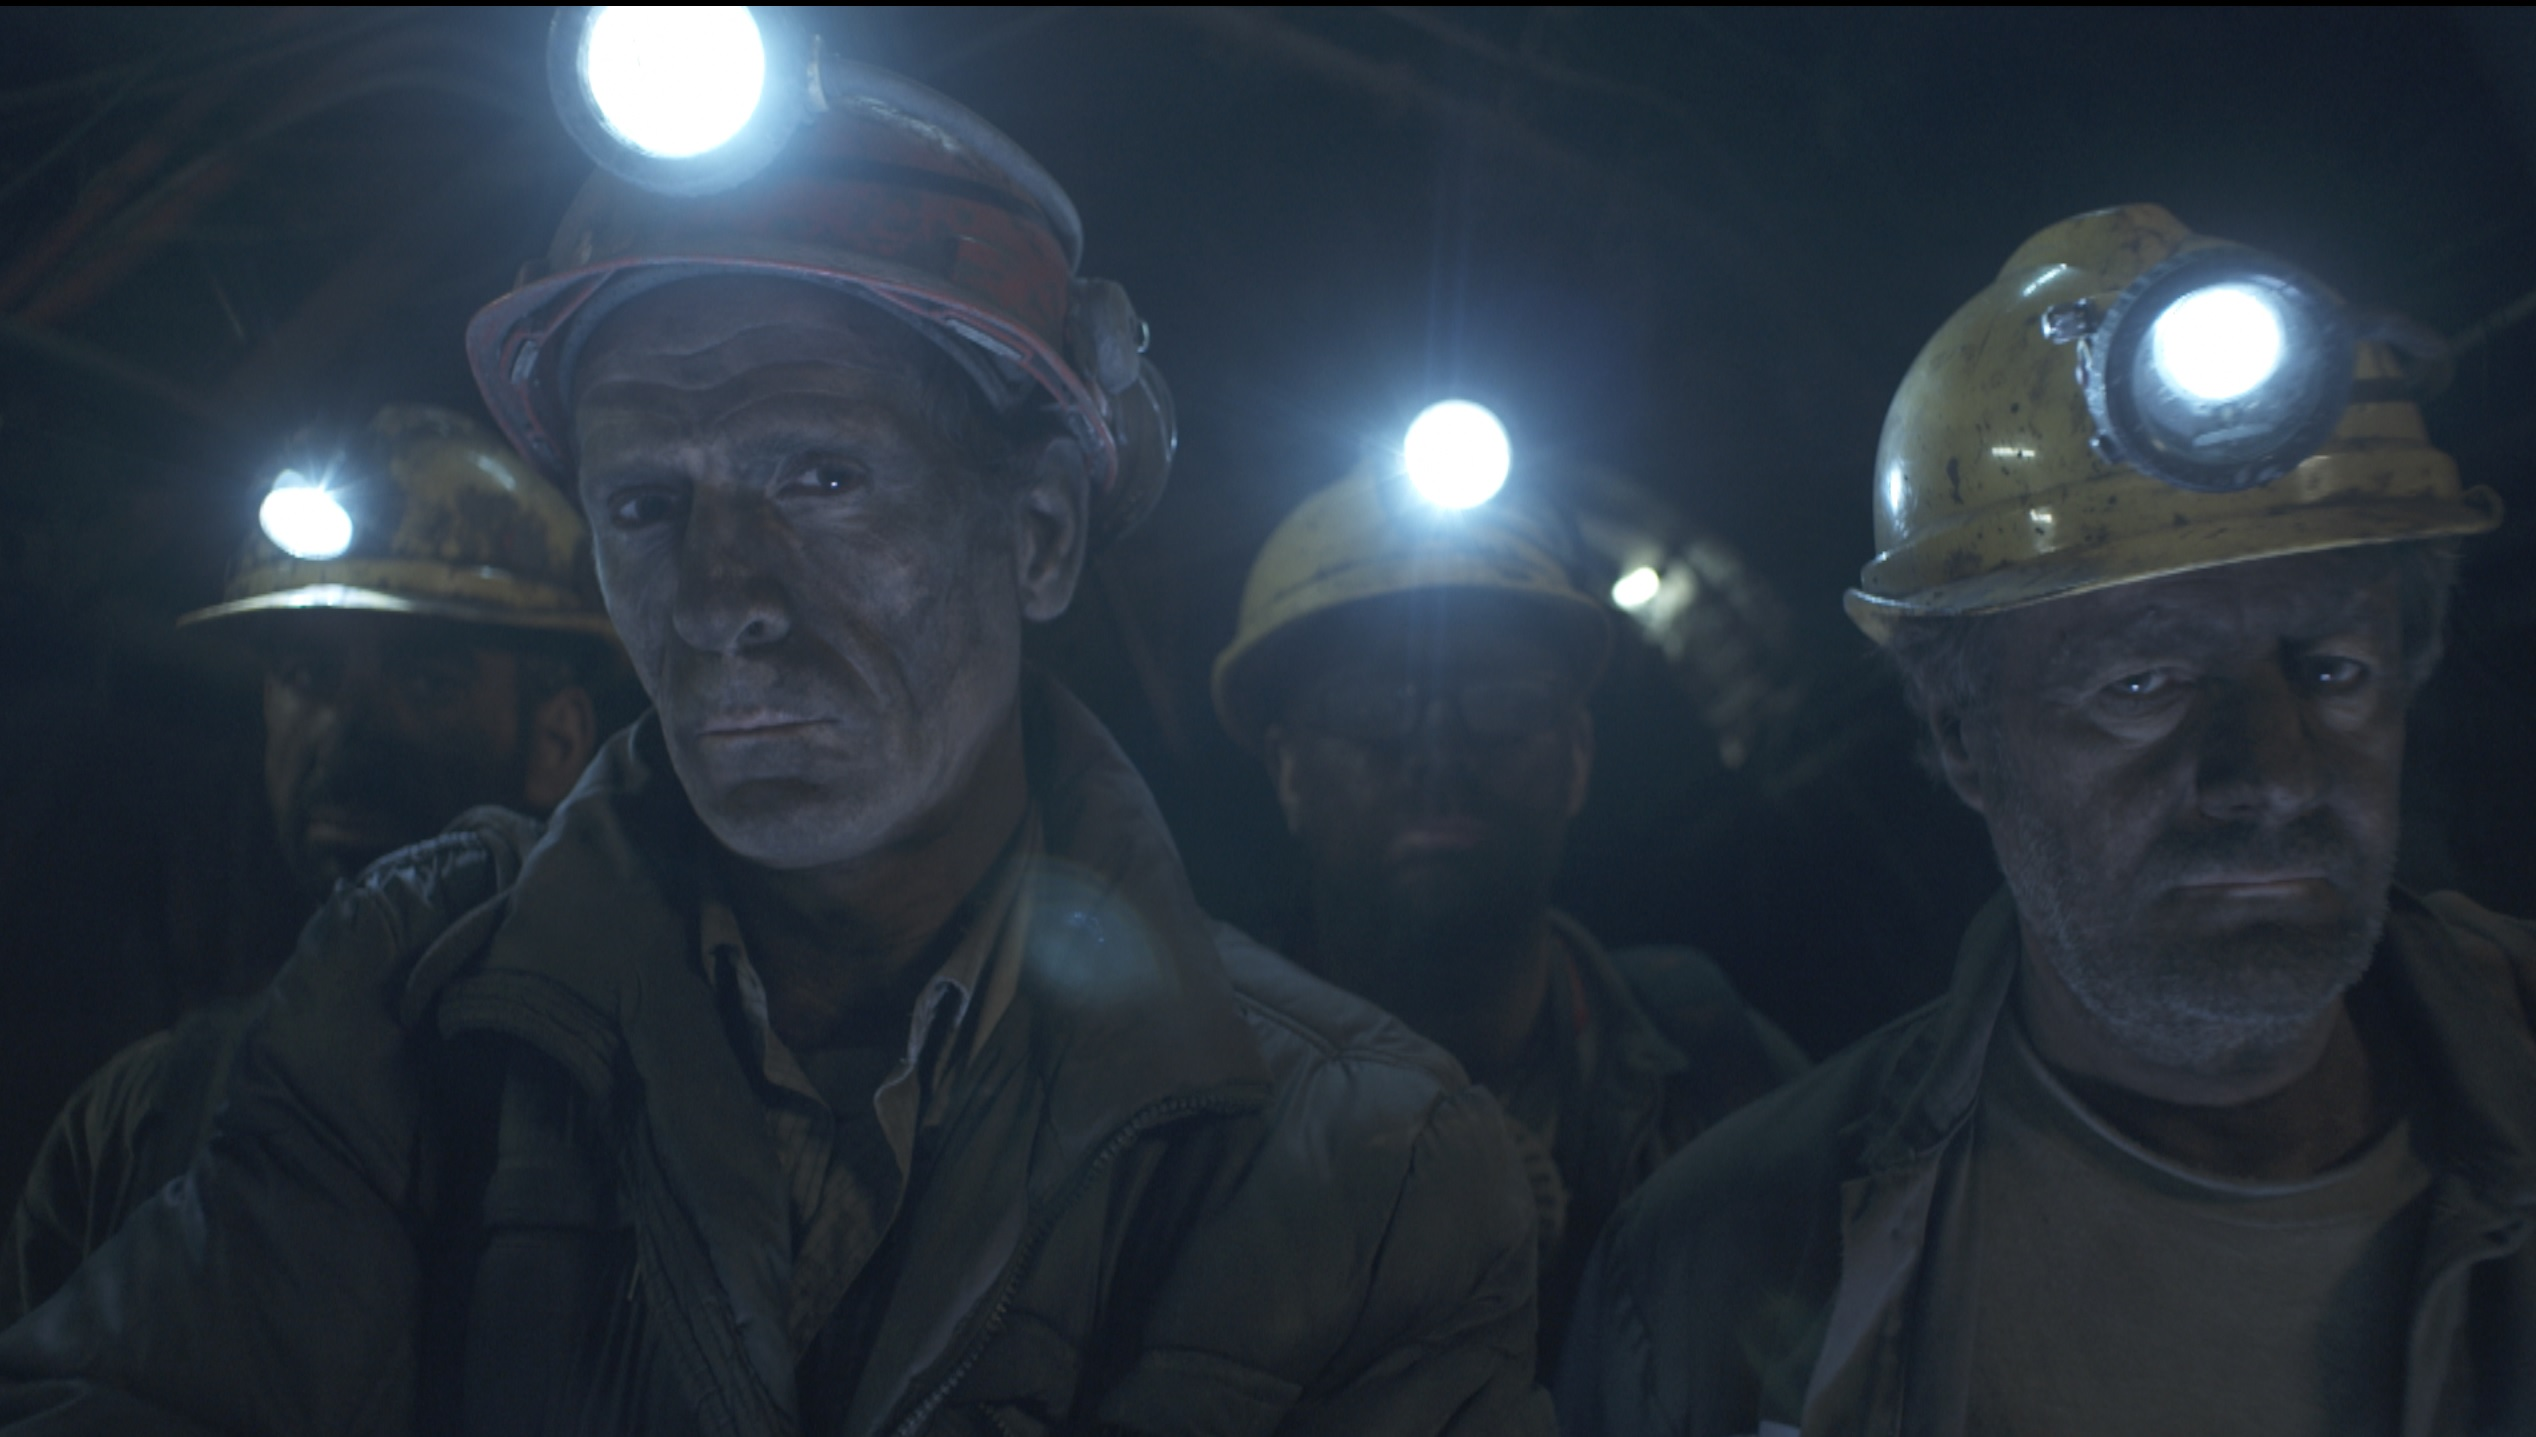 A group of miners look at us in the documentary From The Depths